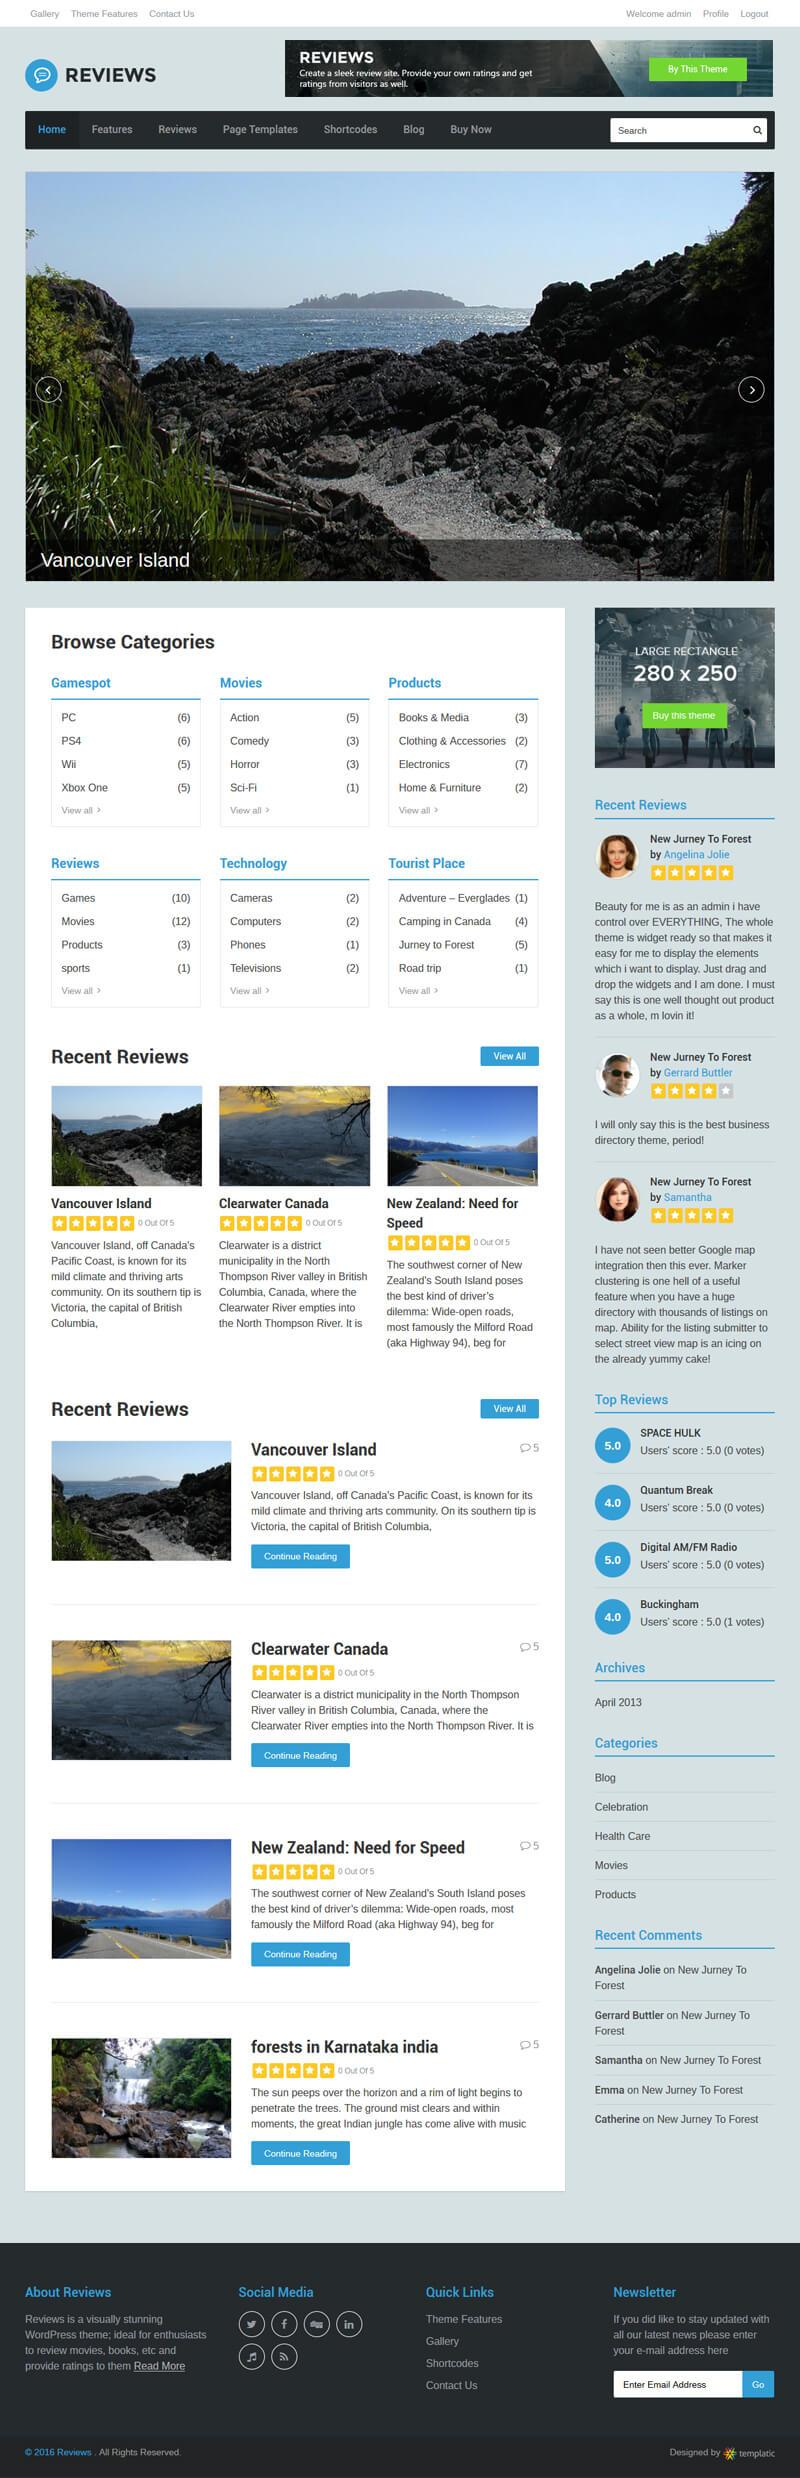 Ratings and reviews Directory software theme